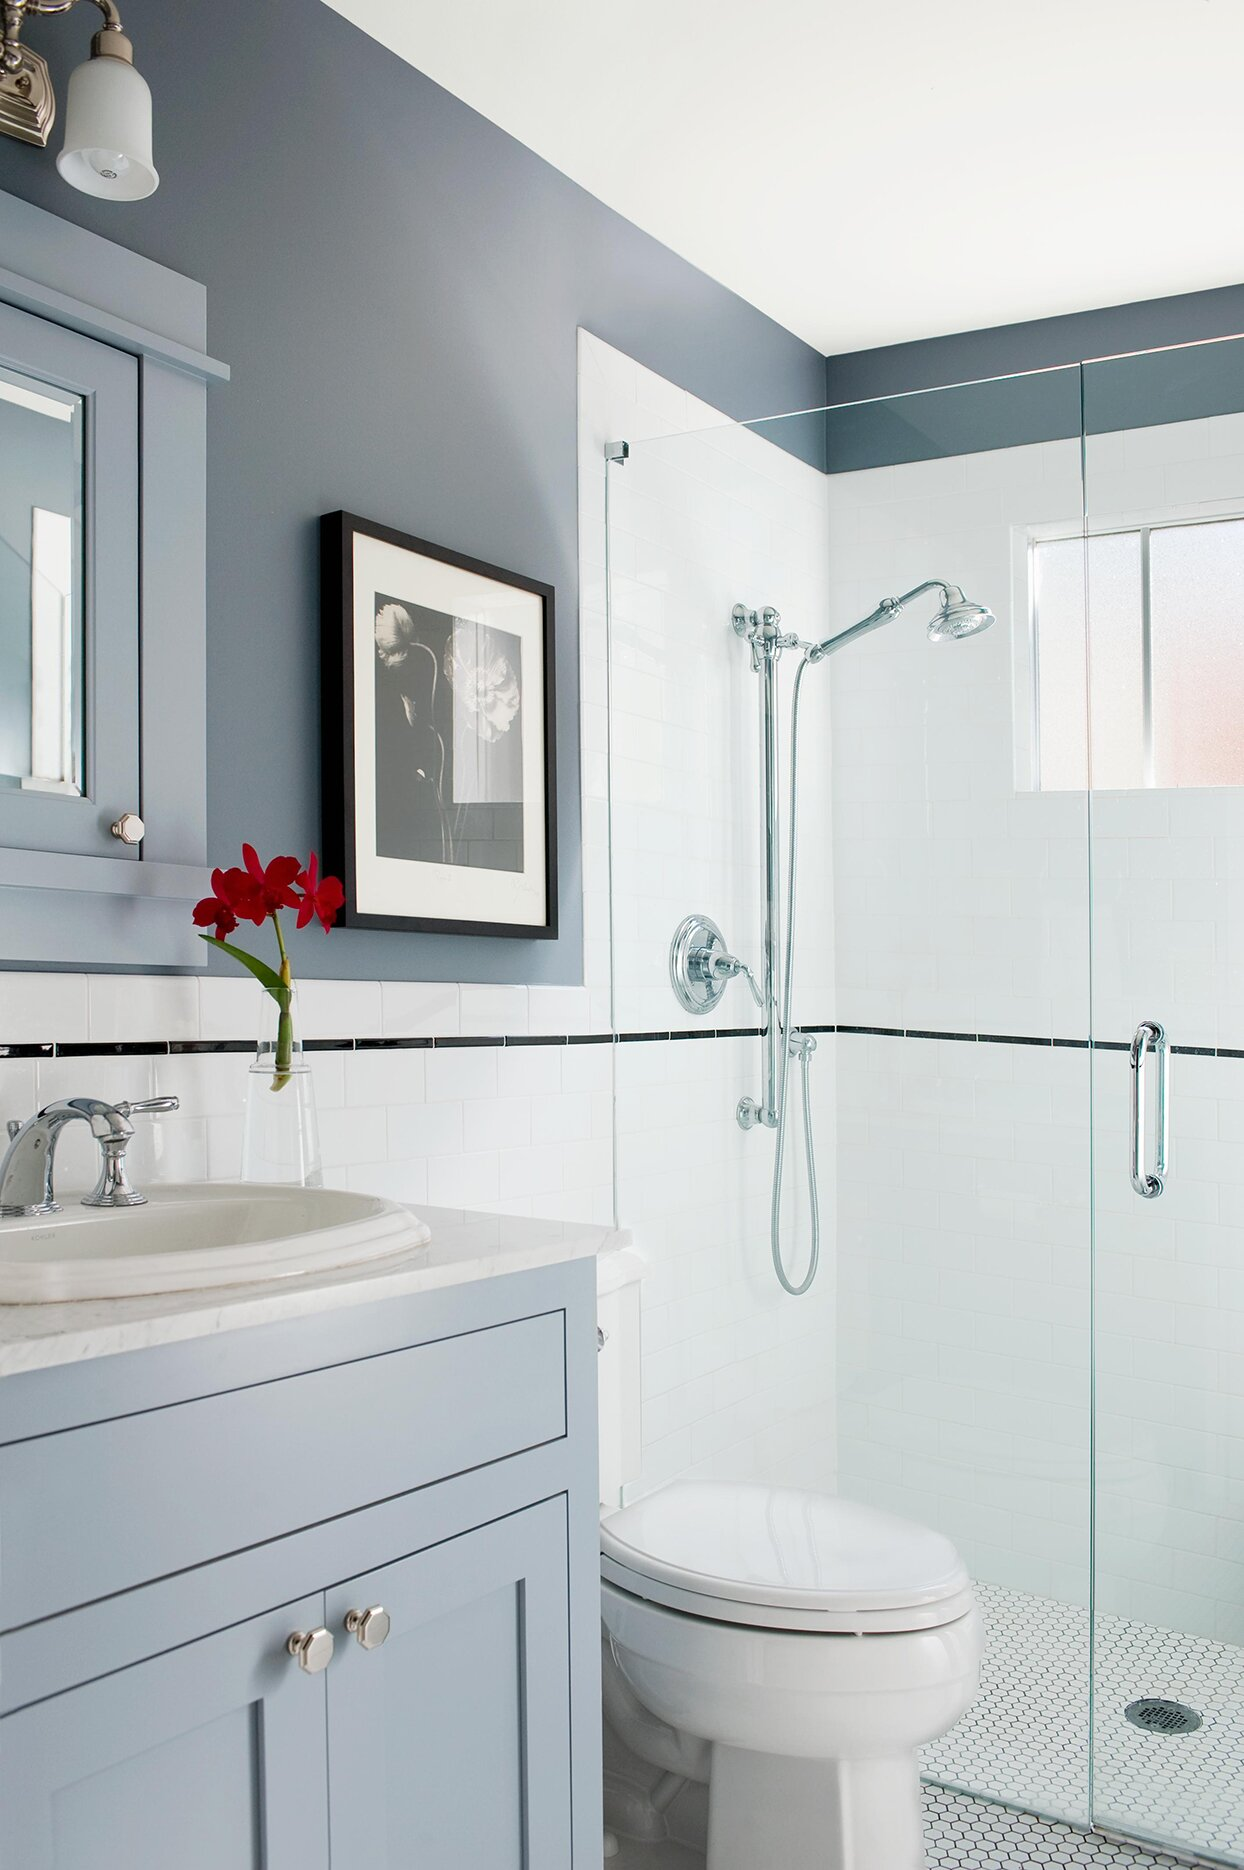 blue-gray bathroom with red flowers